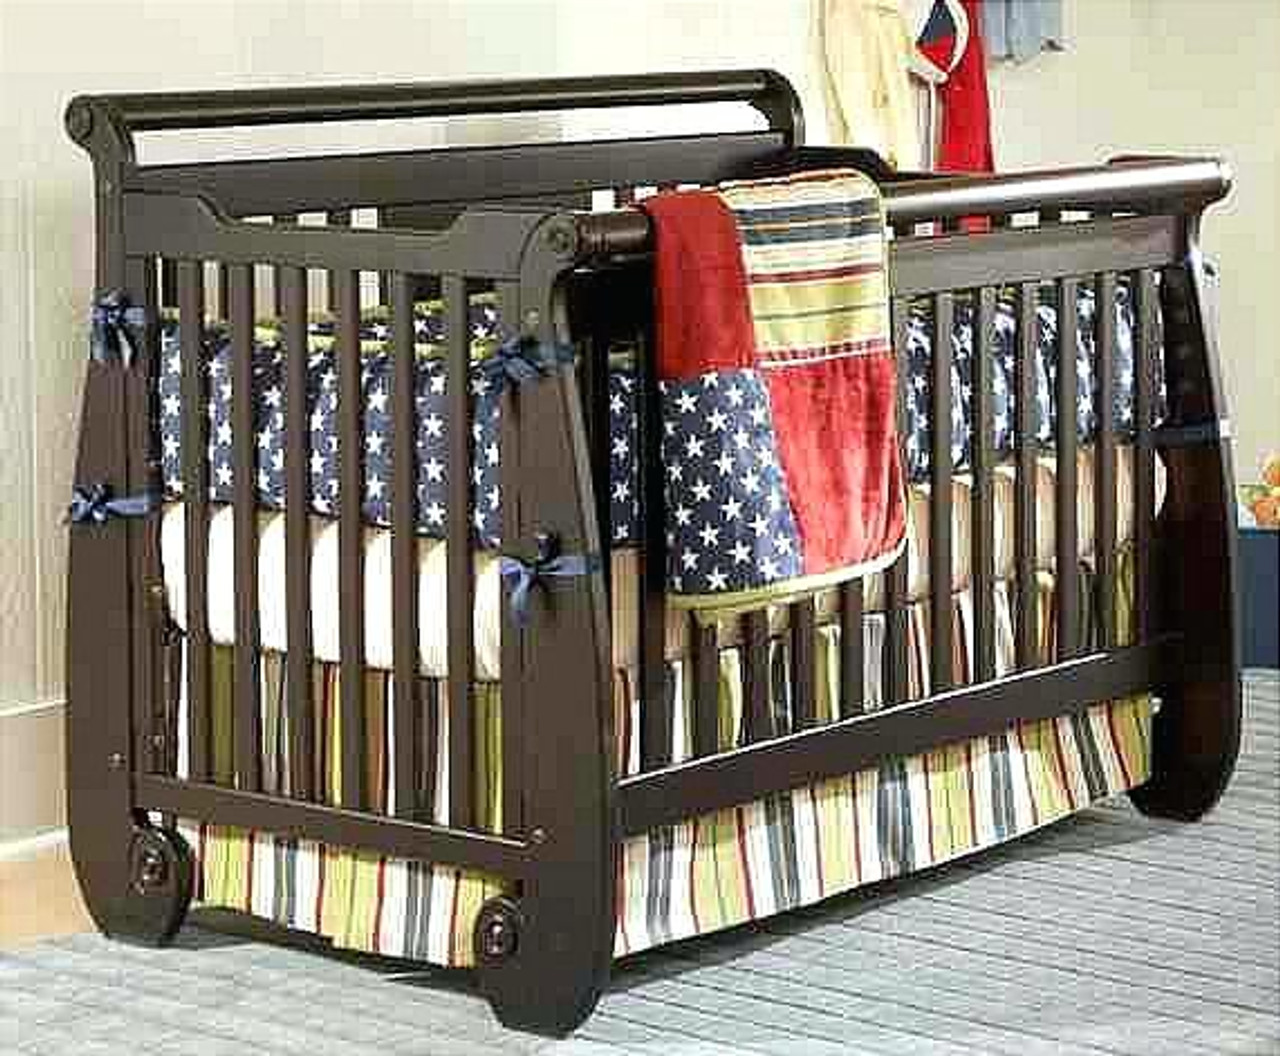 Groovy Serenity Convertible Crib Espresso Ibusinesslaw Wood Chair Design Ideas Ibusinesslaworg